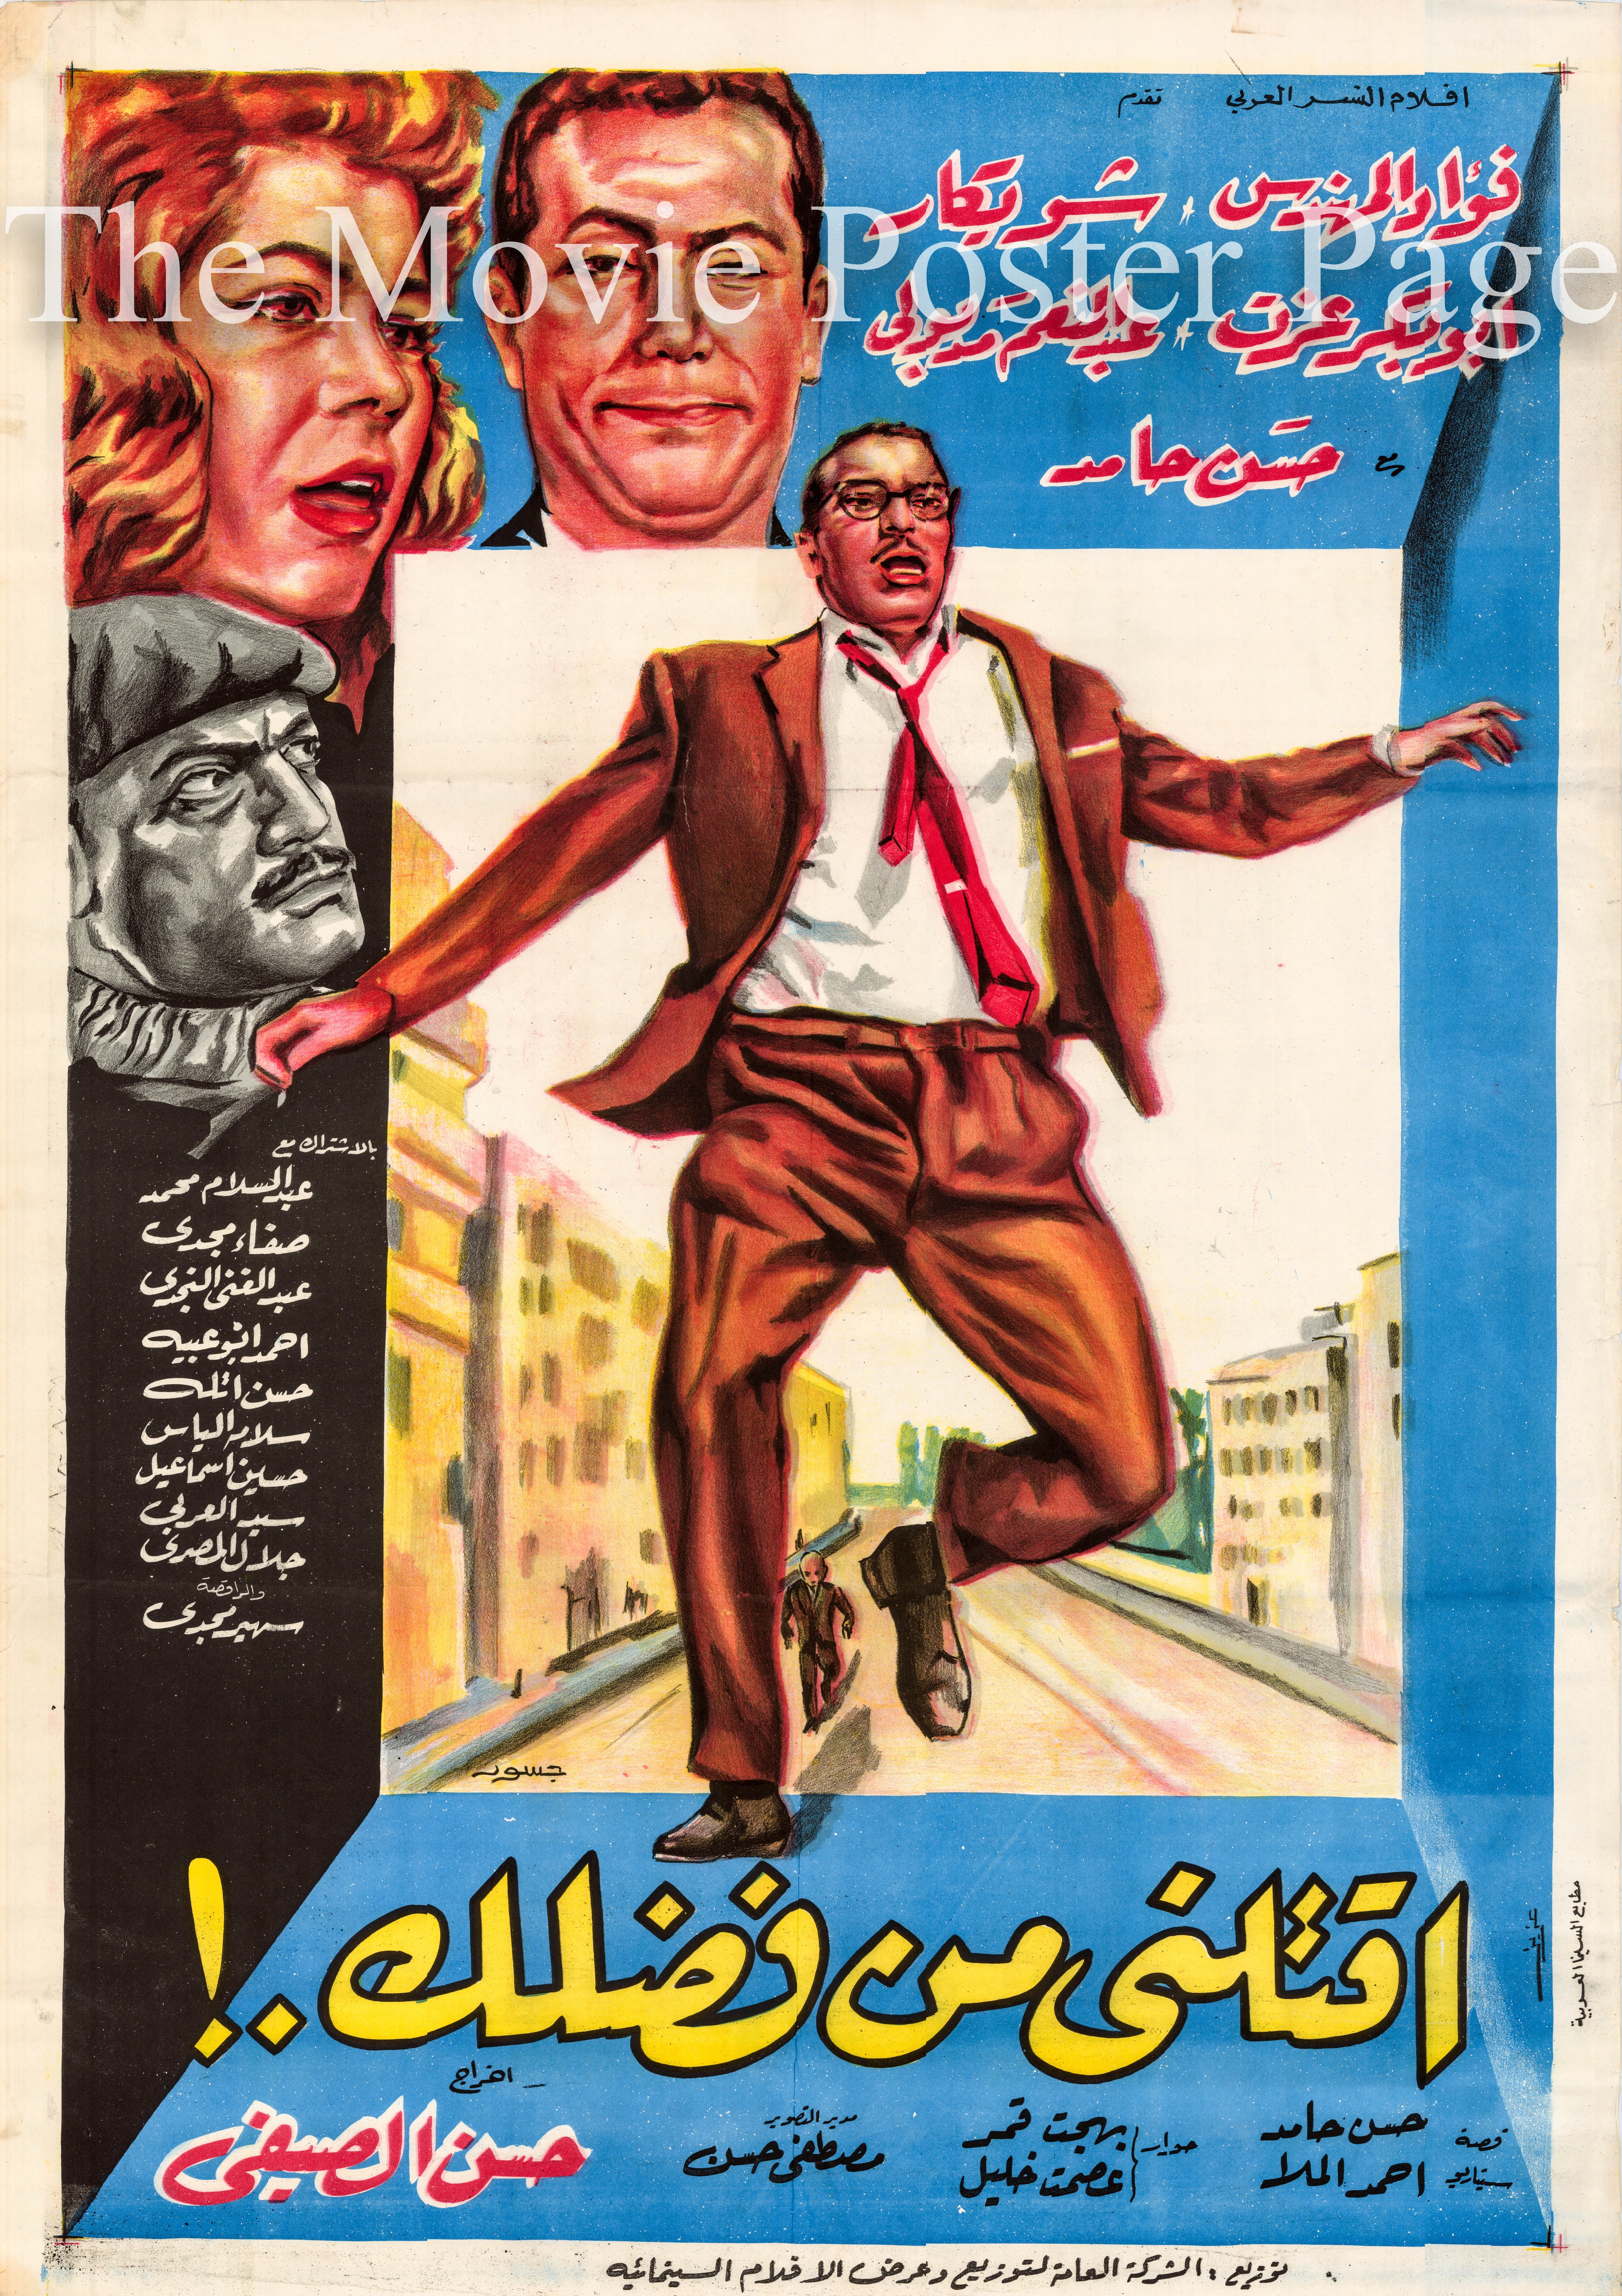 Pictured is an Egyptian promotional poster for the 1965 Hassan El-Seify film Please Kill Me starring Fouad El-Mohandes as Adel.